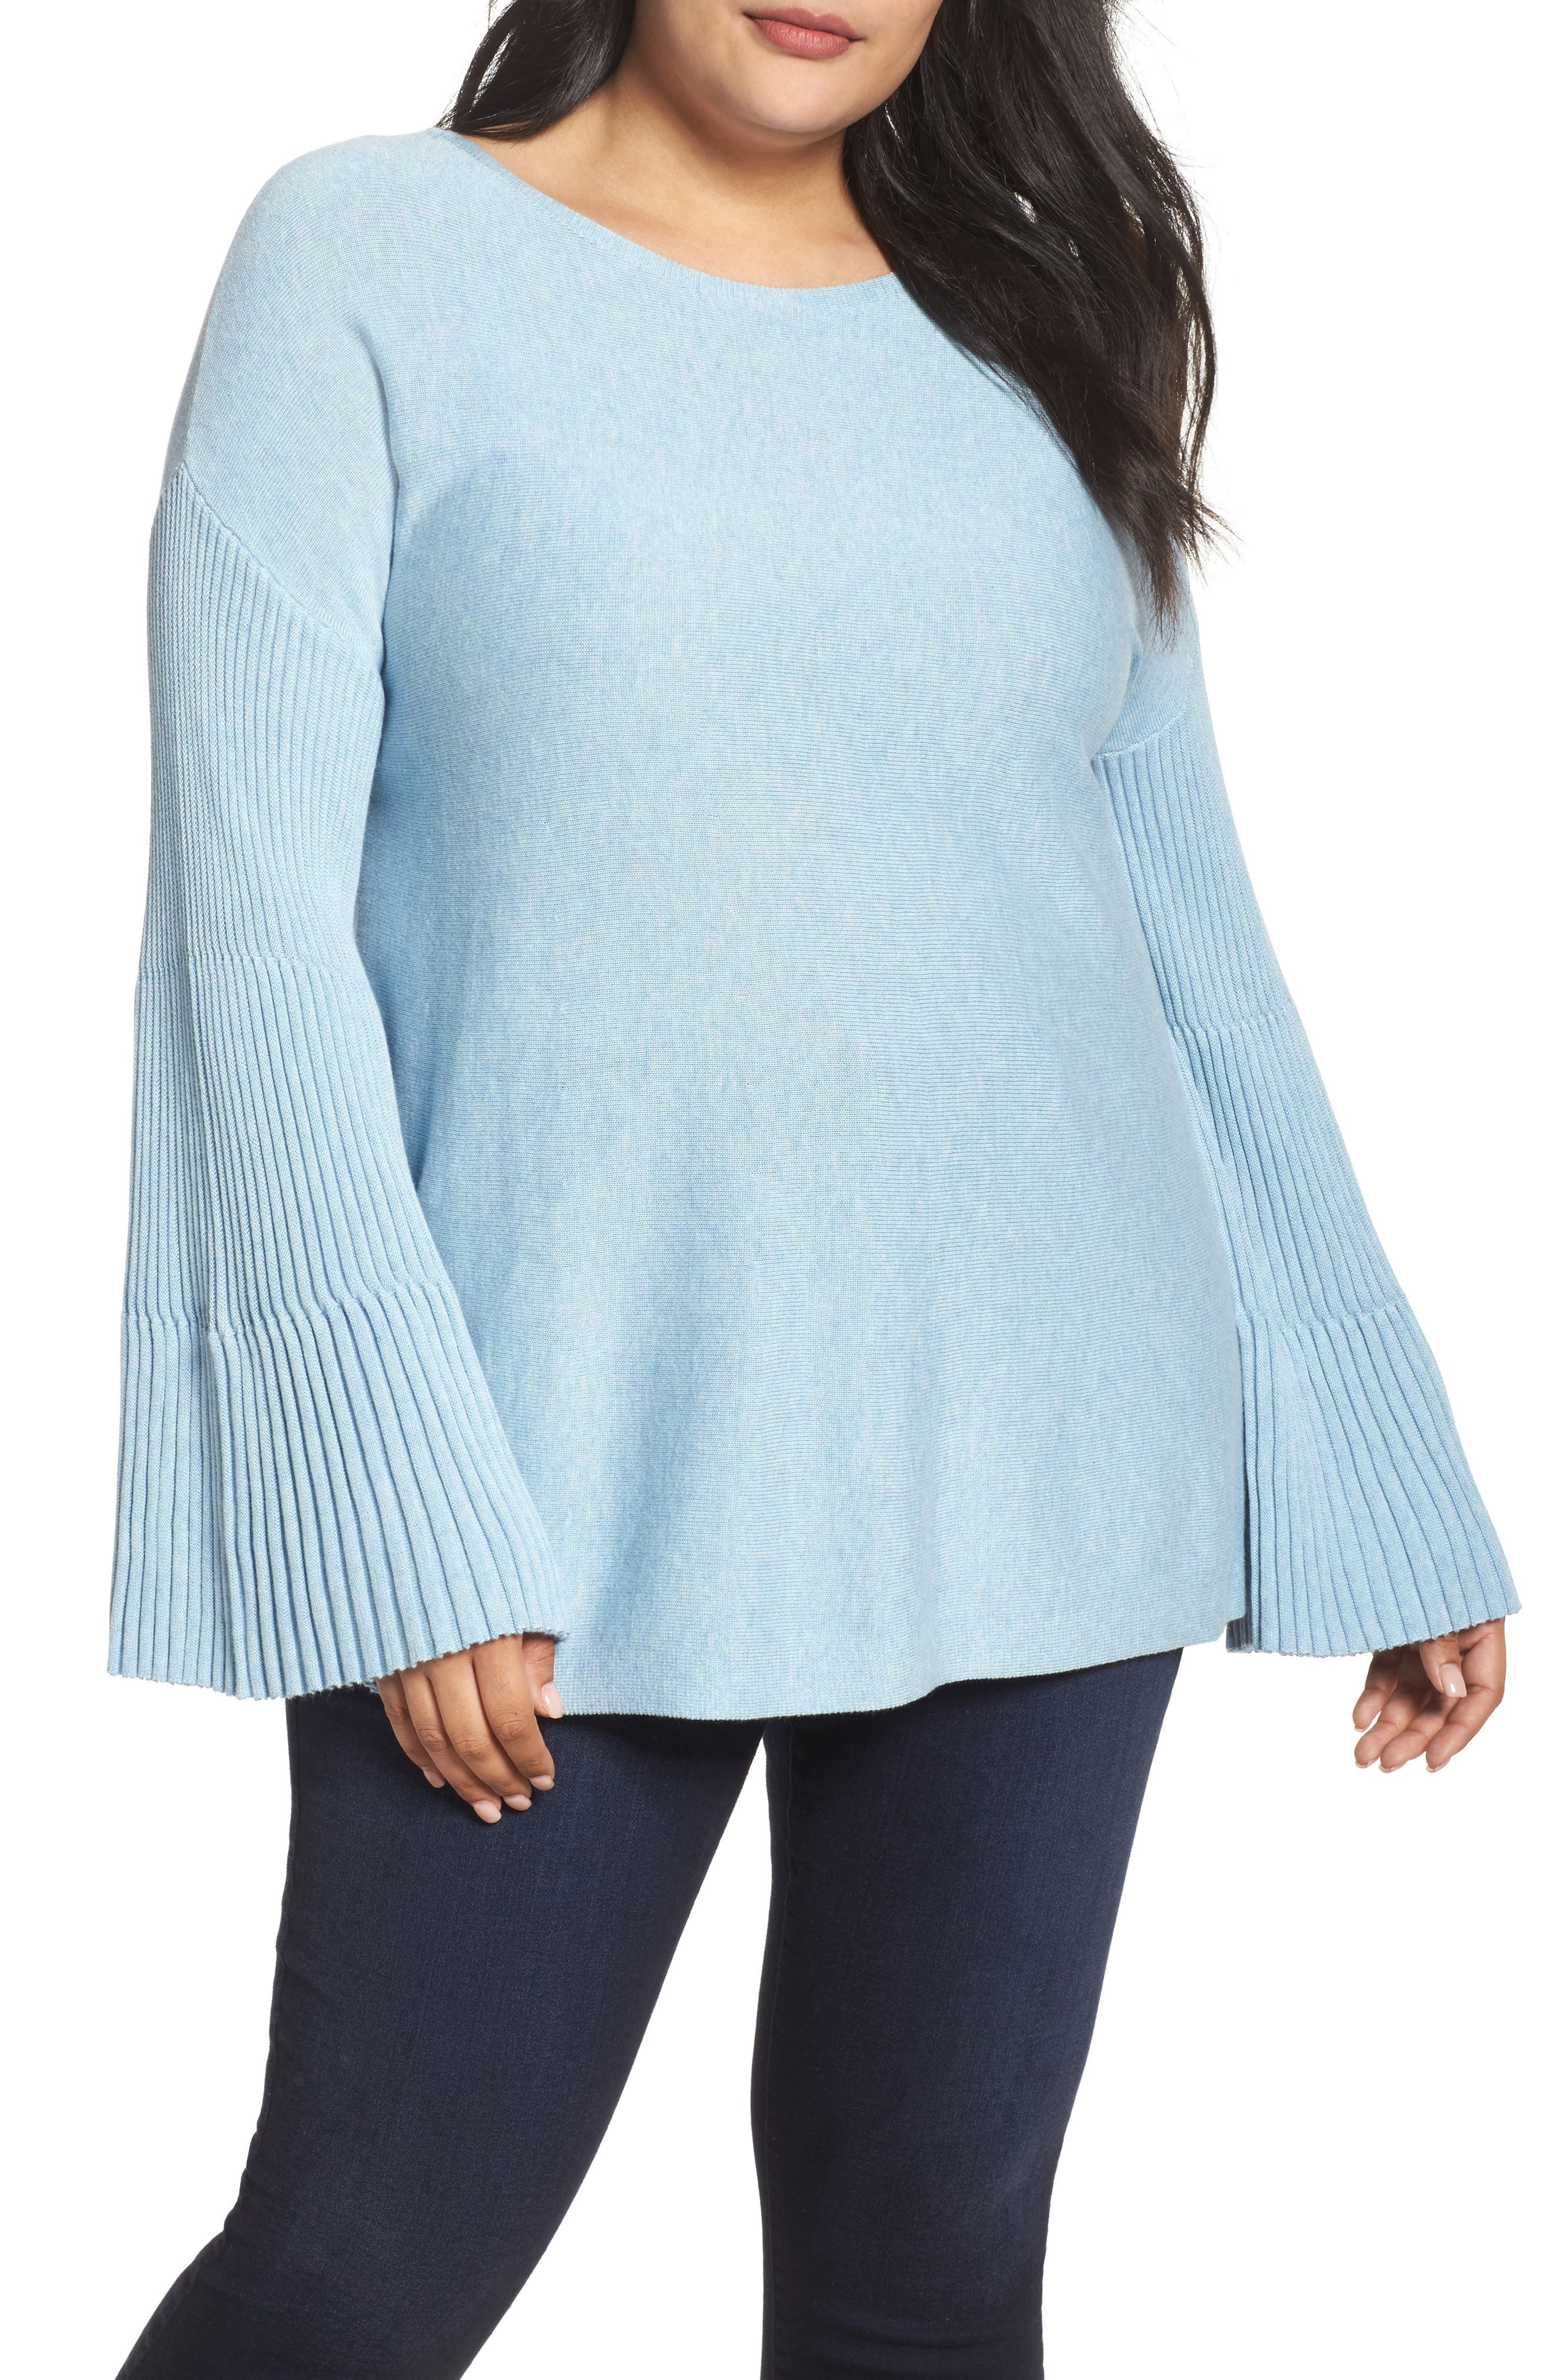 Main Image - Vince Camuto Ribbed Bell Sleeve Sweater (Plus Size)